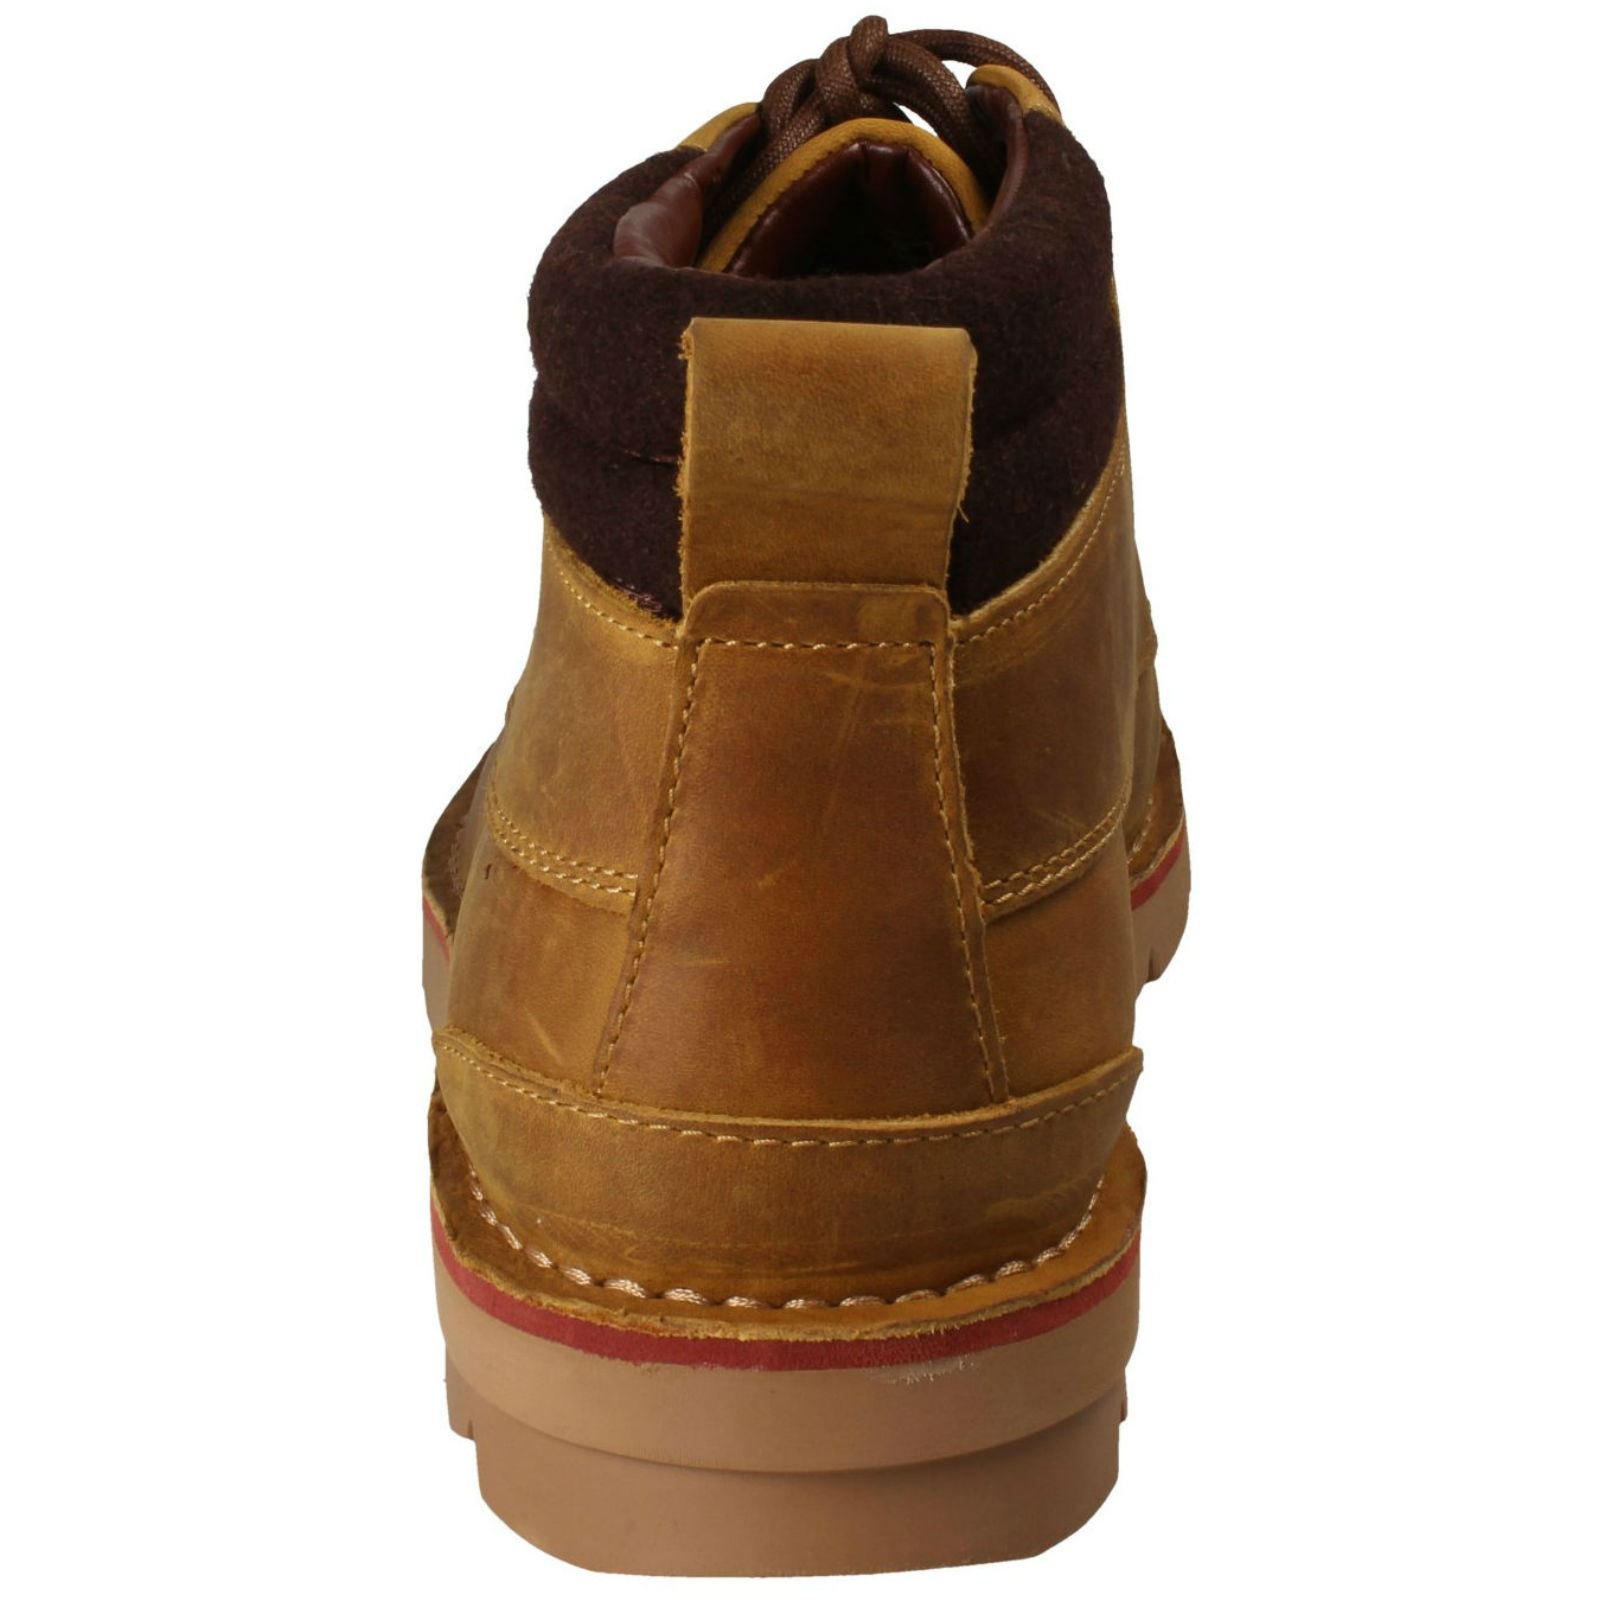 Mens-Clarks-Warm-Lined-Casual-Boots-039-Varick-Heal-039 thumbnail 12